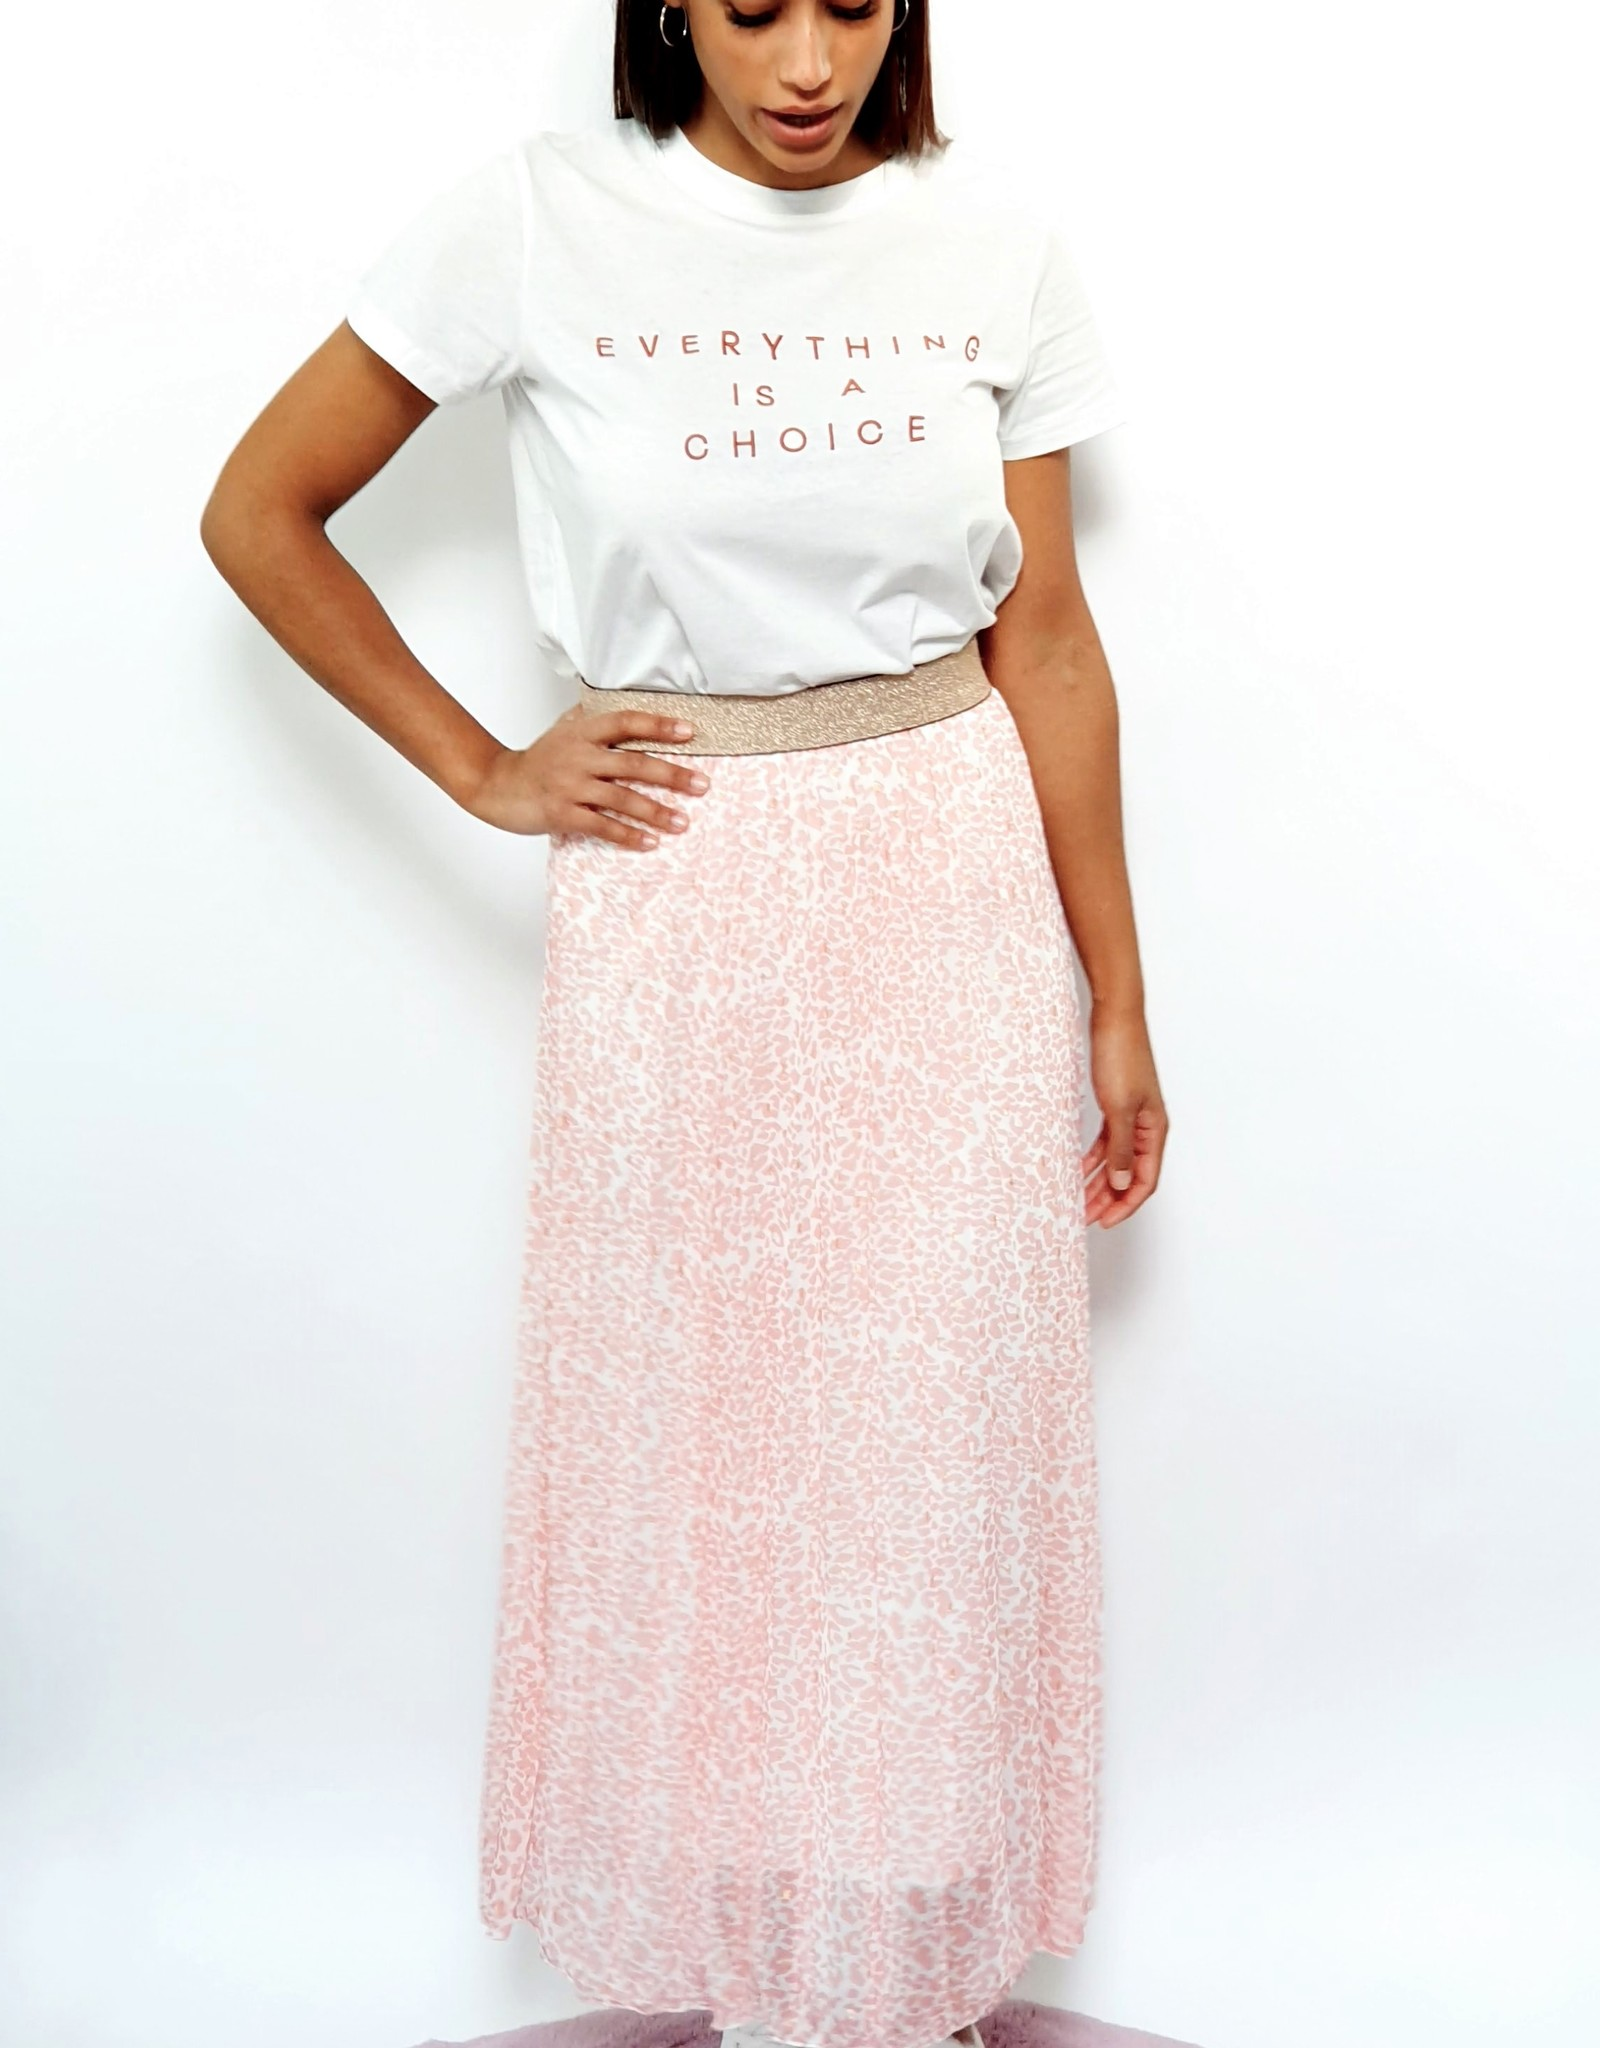 Thé pink and golden skirt